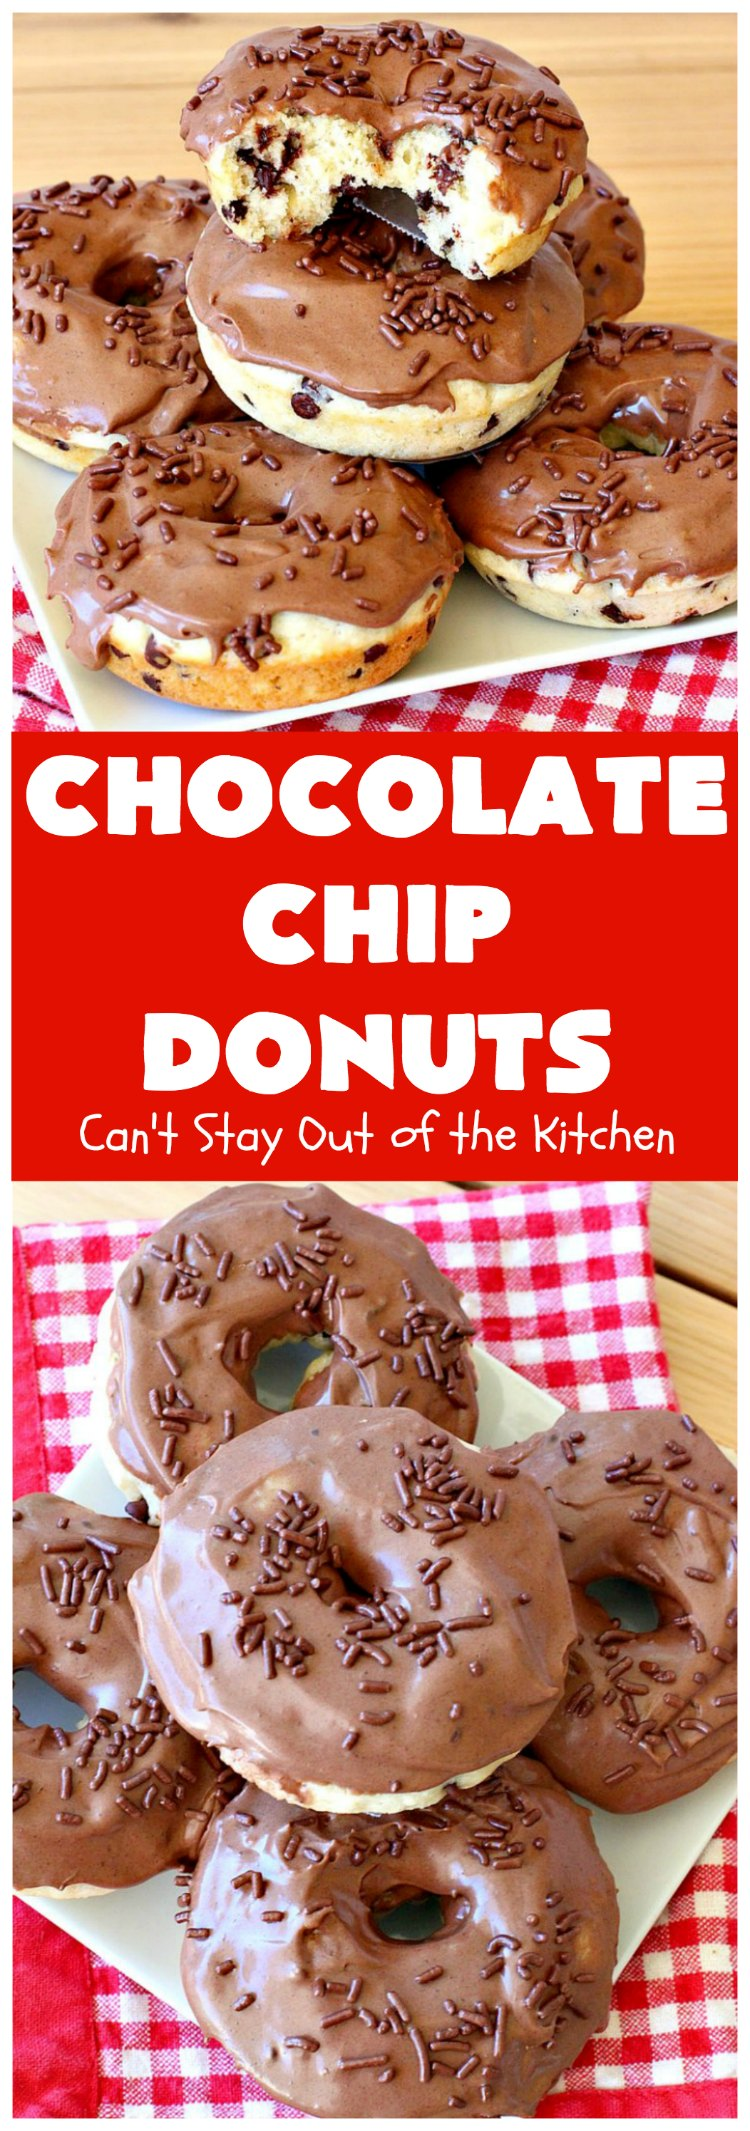 Chocolate Chip Donuts | Can't Stay Out of the Kitchen